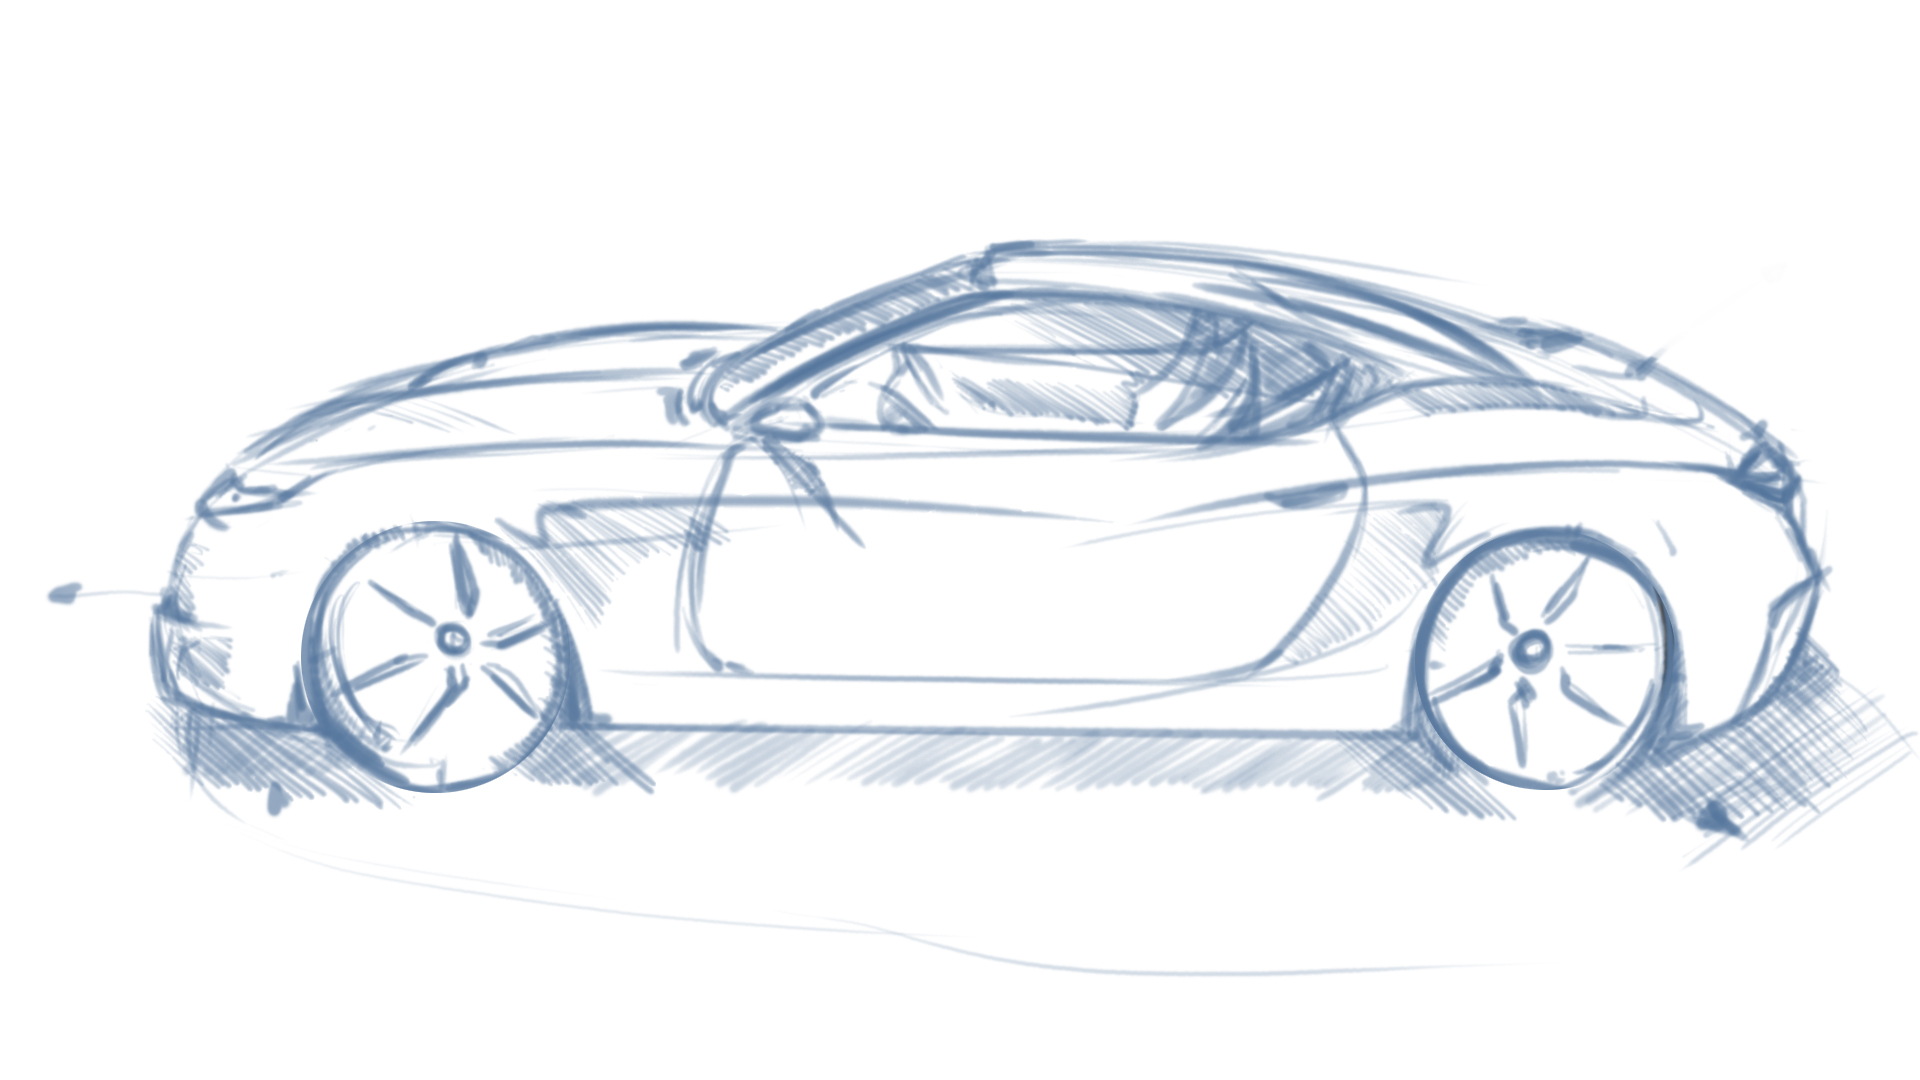 Drawn vehicle perspective drawing Draw Car cars One Point